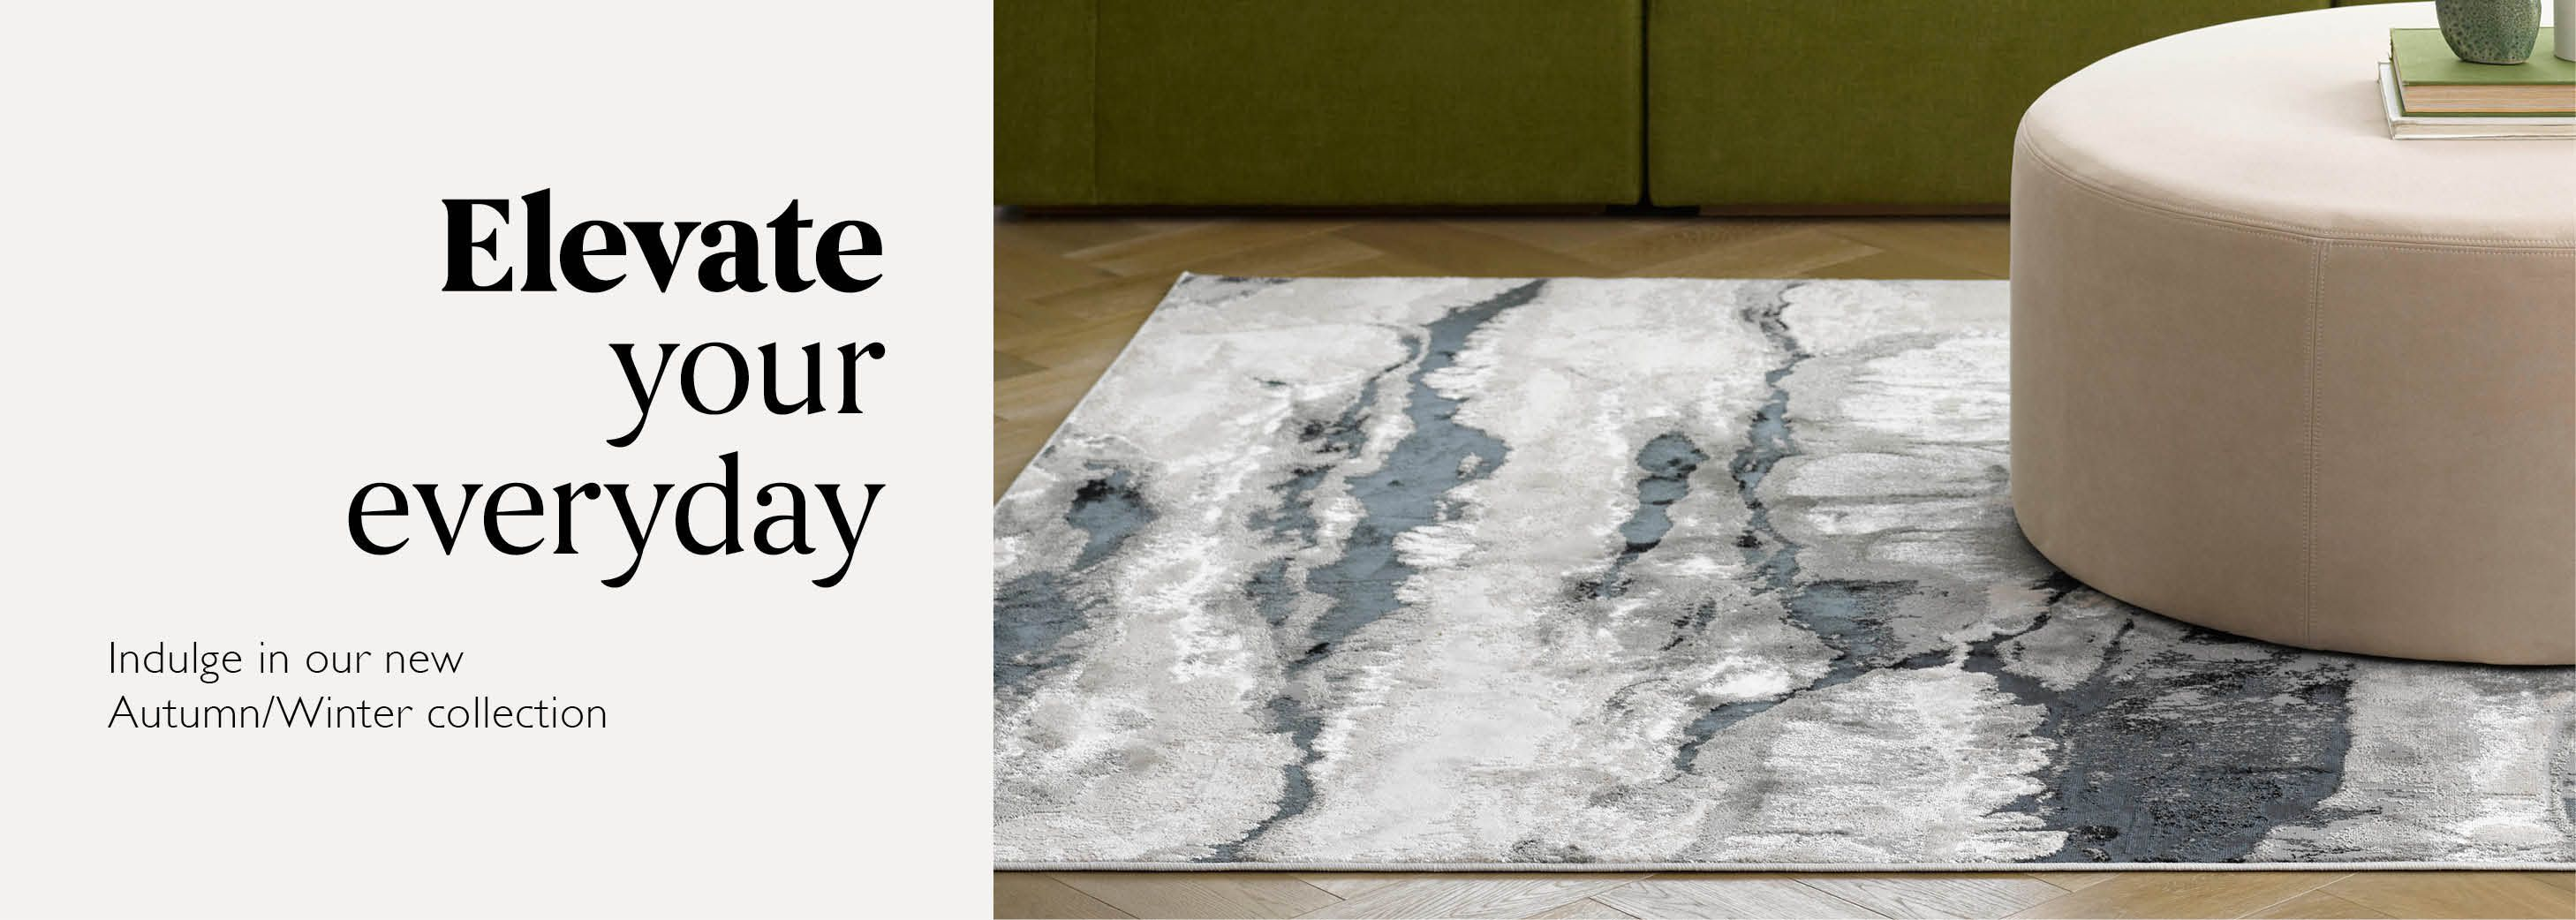 Elevate your everyday - Shop Rugs